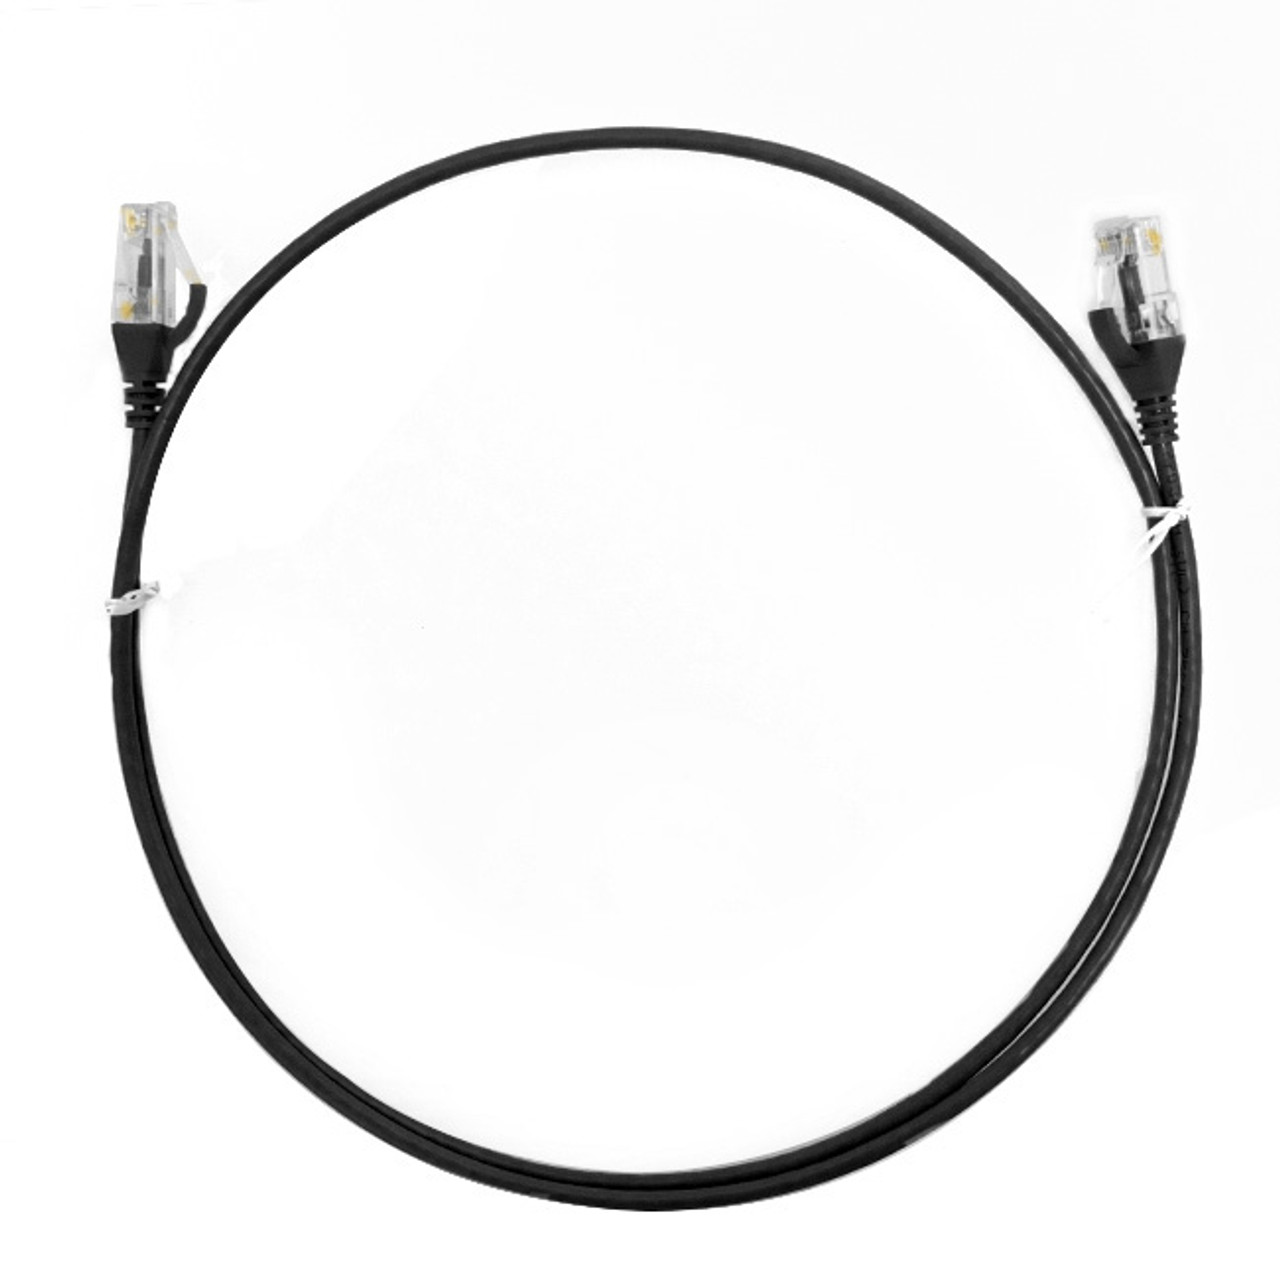 Image for 0.25m Cat 6 Ultra Thin LSZH Ethernet Network Cables: Black CX Computer Superstore